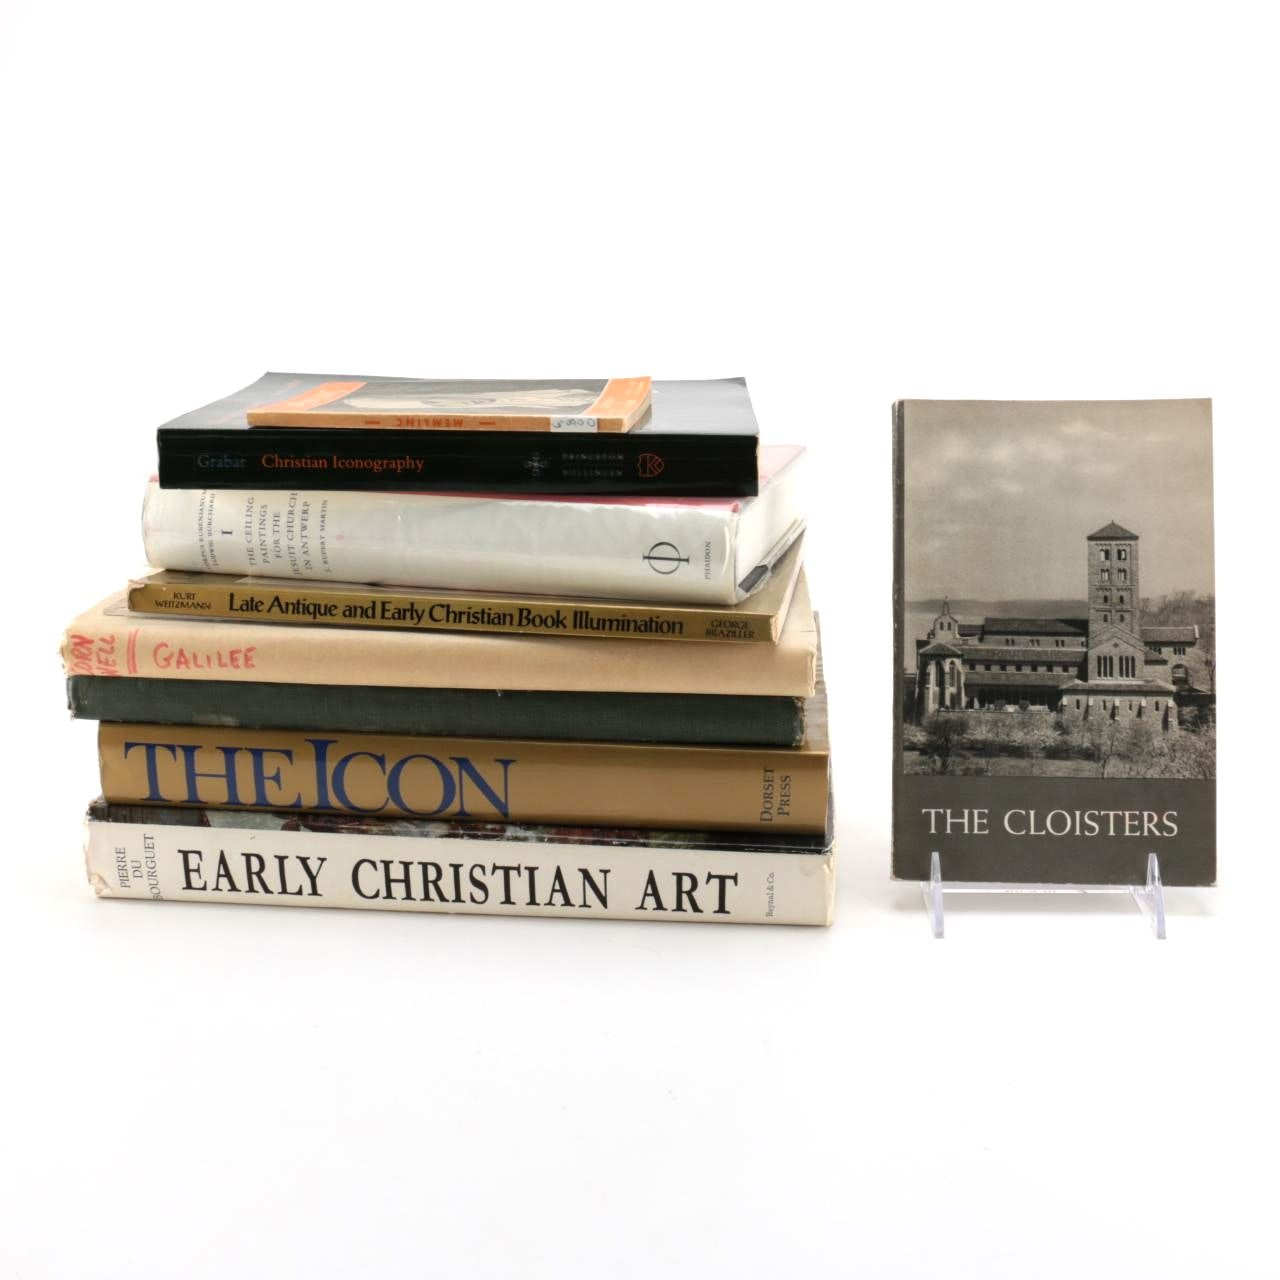 Books on Christian Art and Iconography